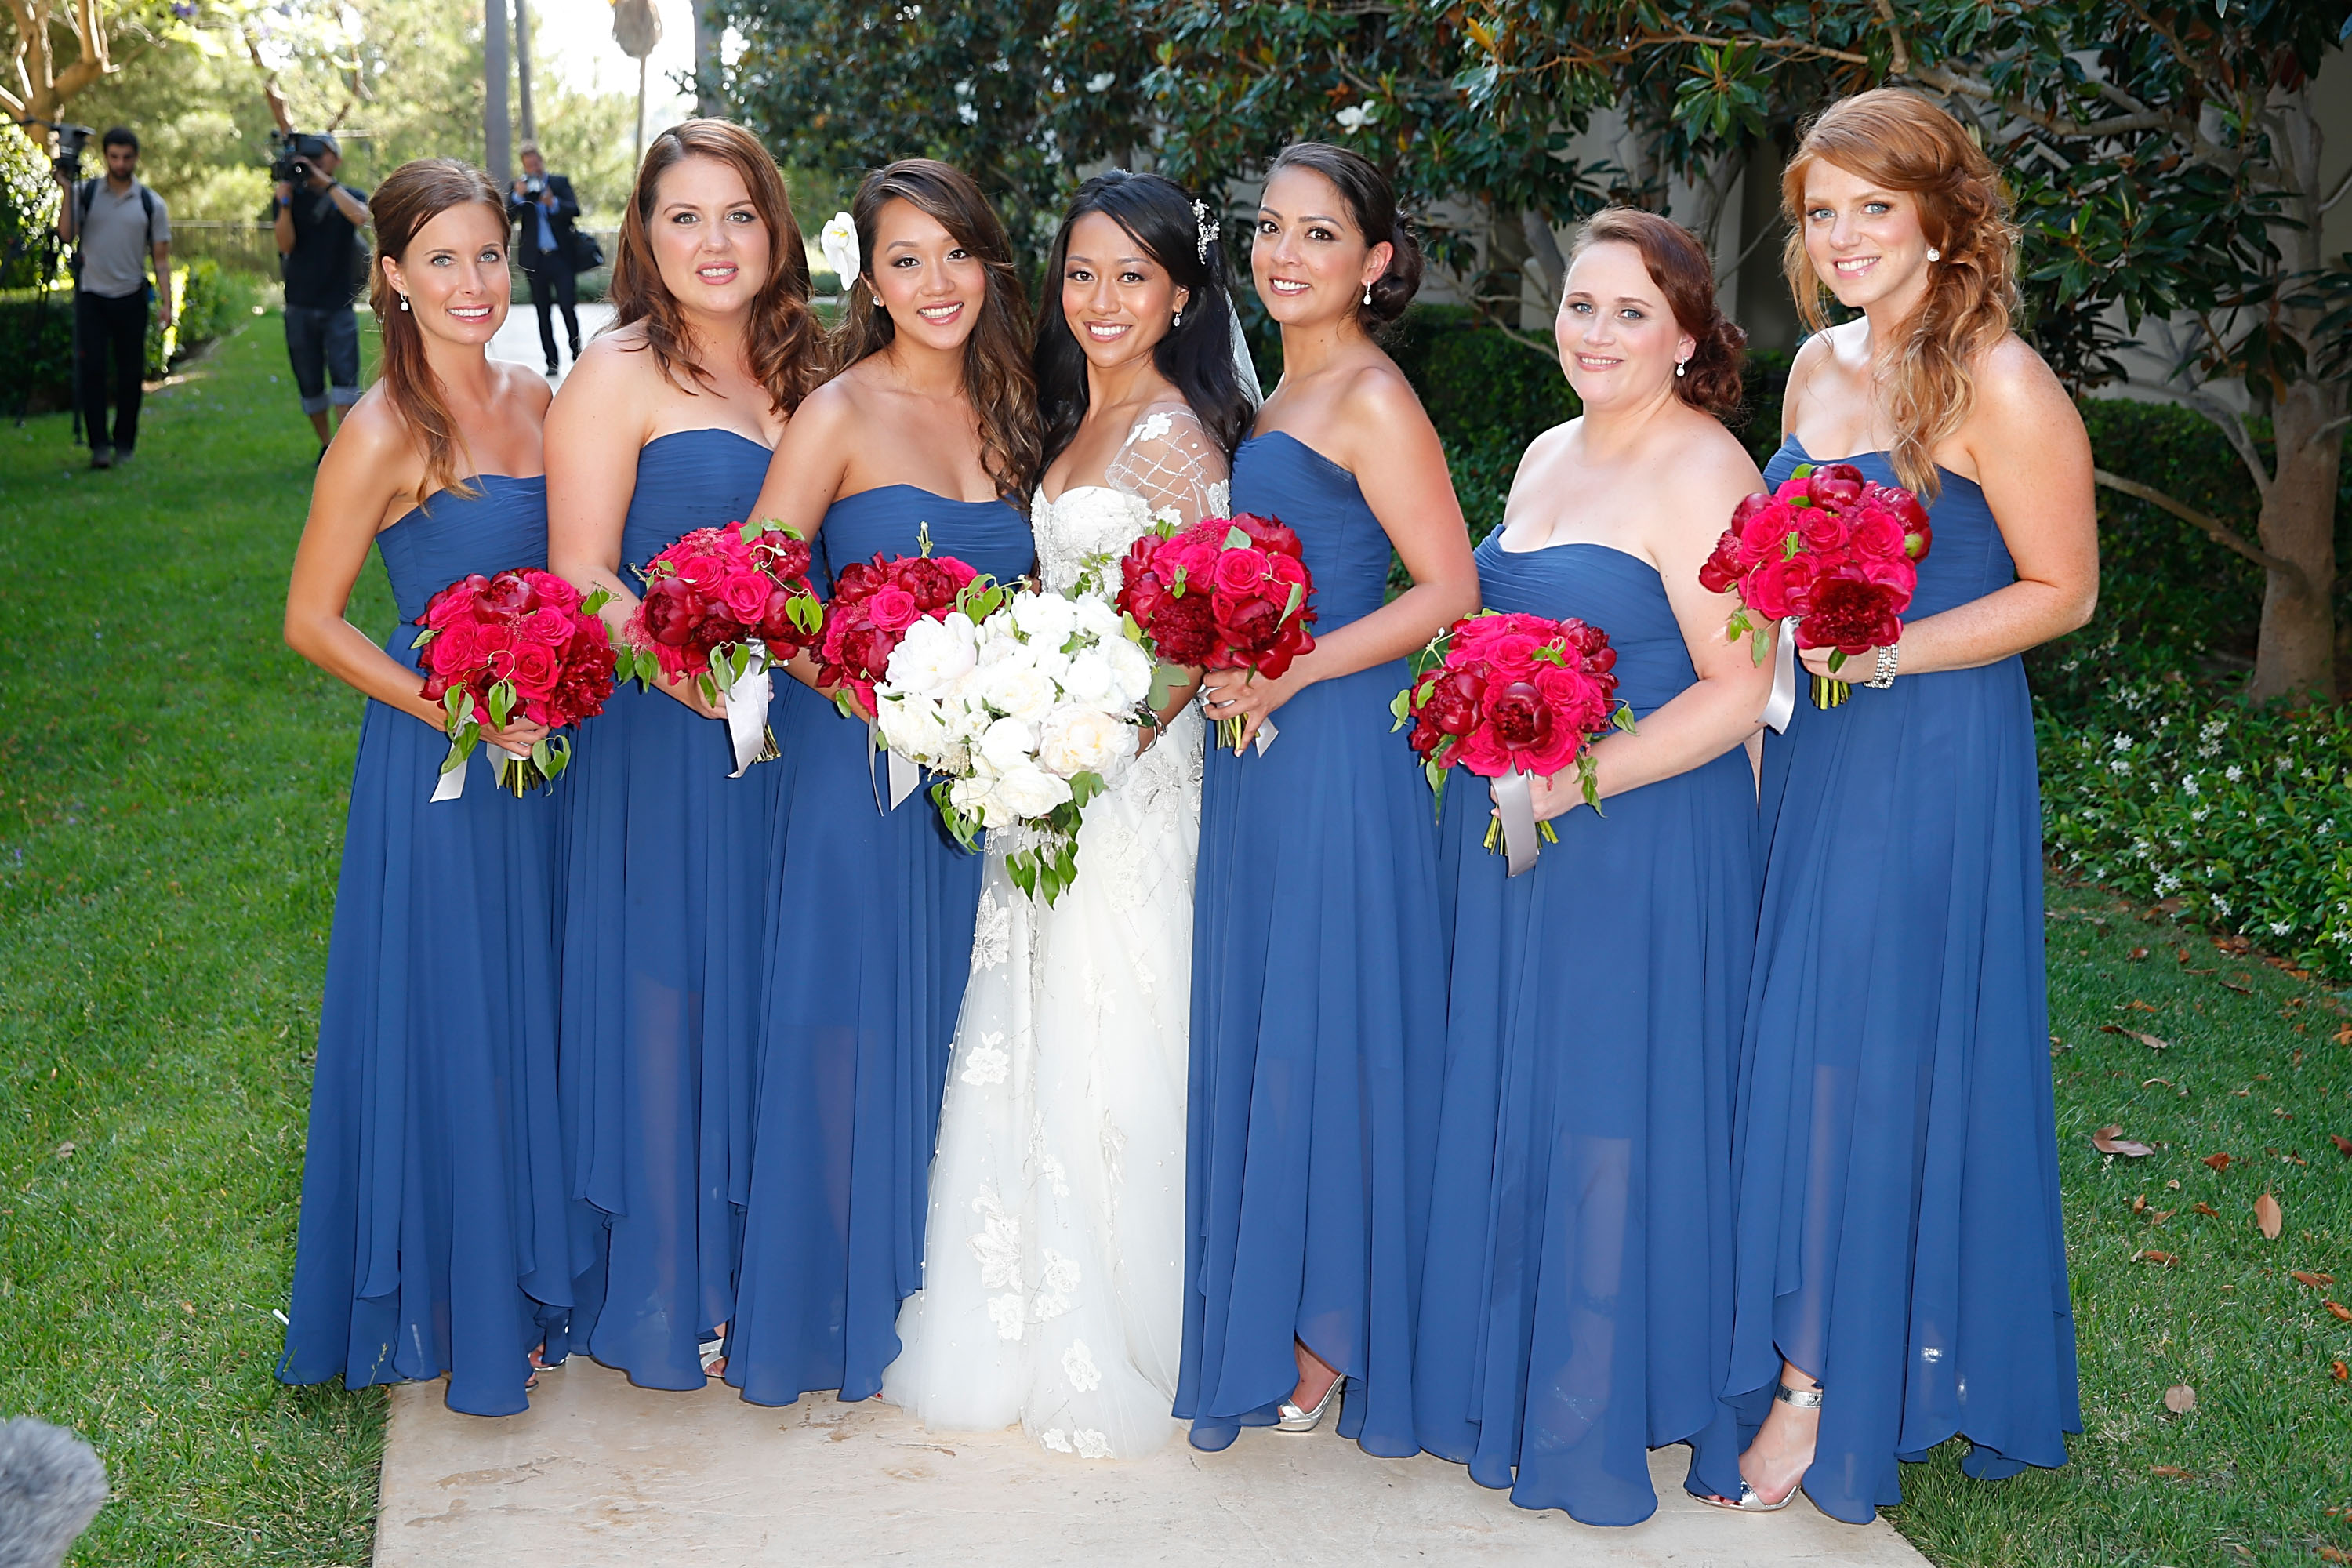 6 Reasons Bridesmaid Dresses Are The Absolute Worst And Should Be ...